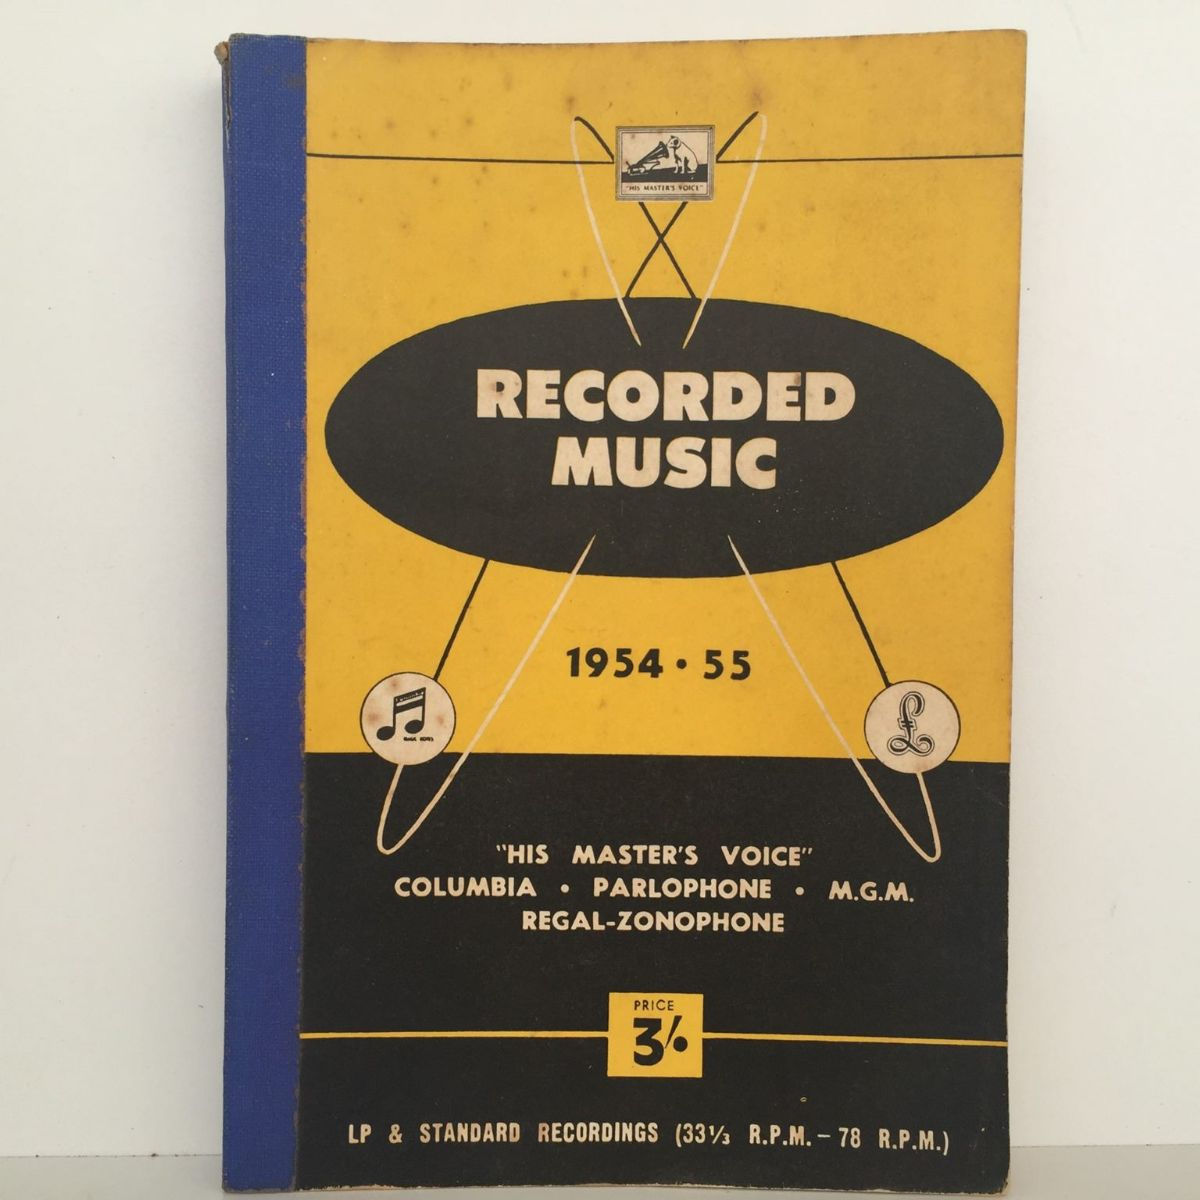 RECORDED MUSIC 1954 - 55: Vintage Catalogue of Long Playing Records